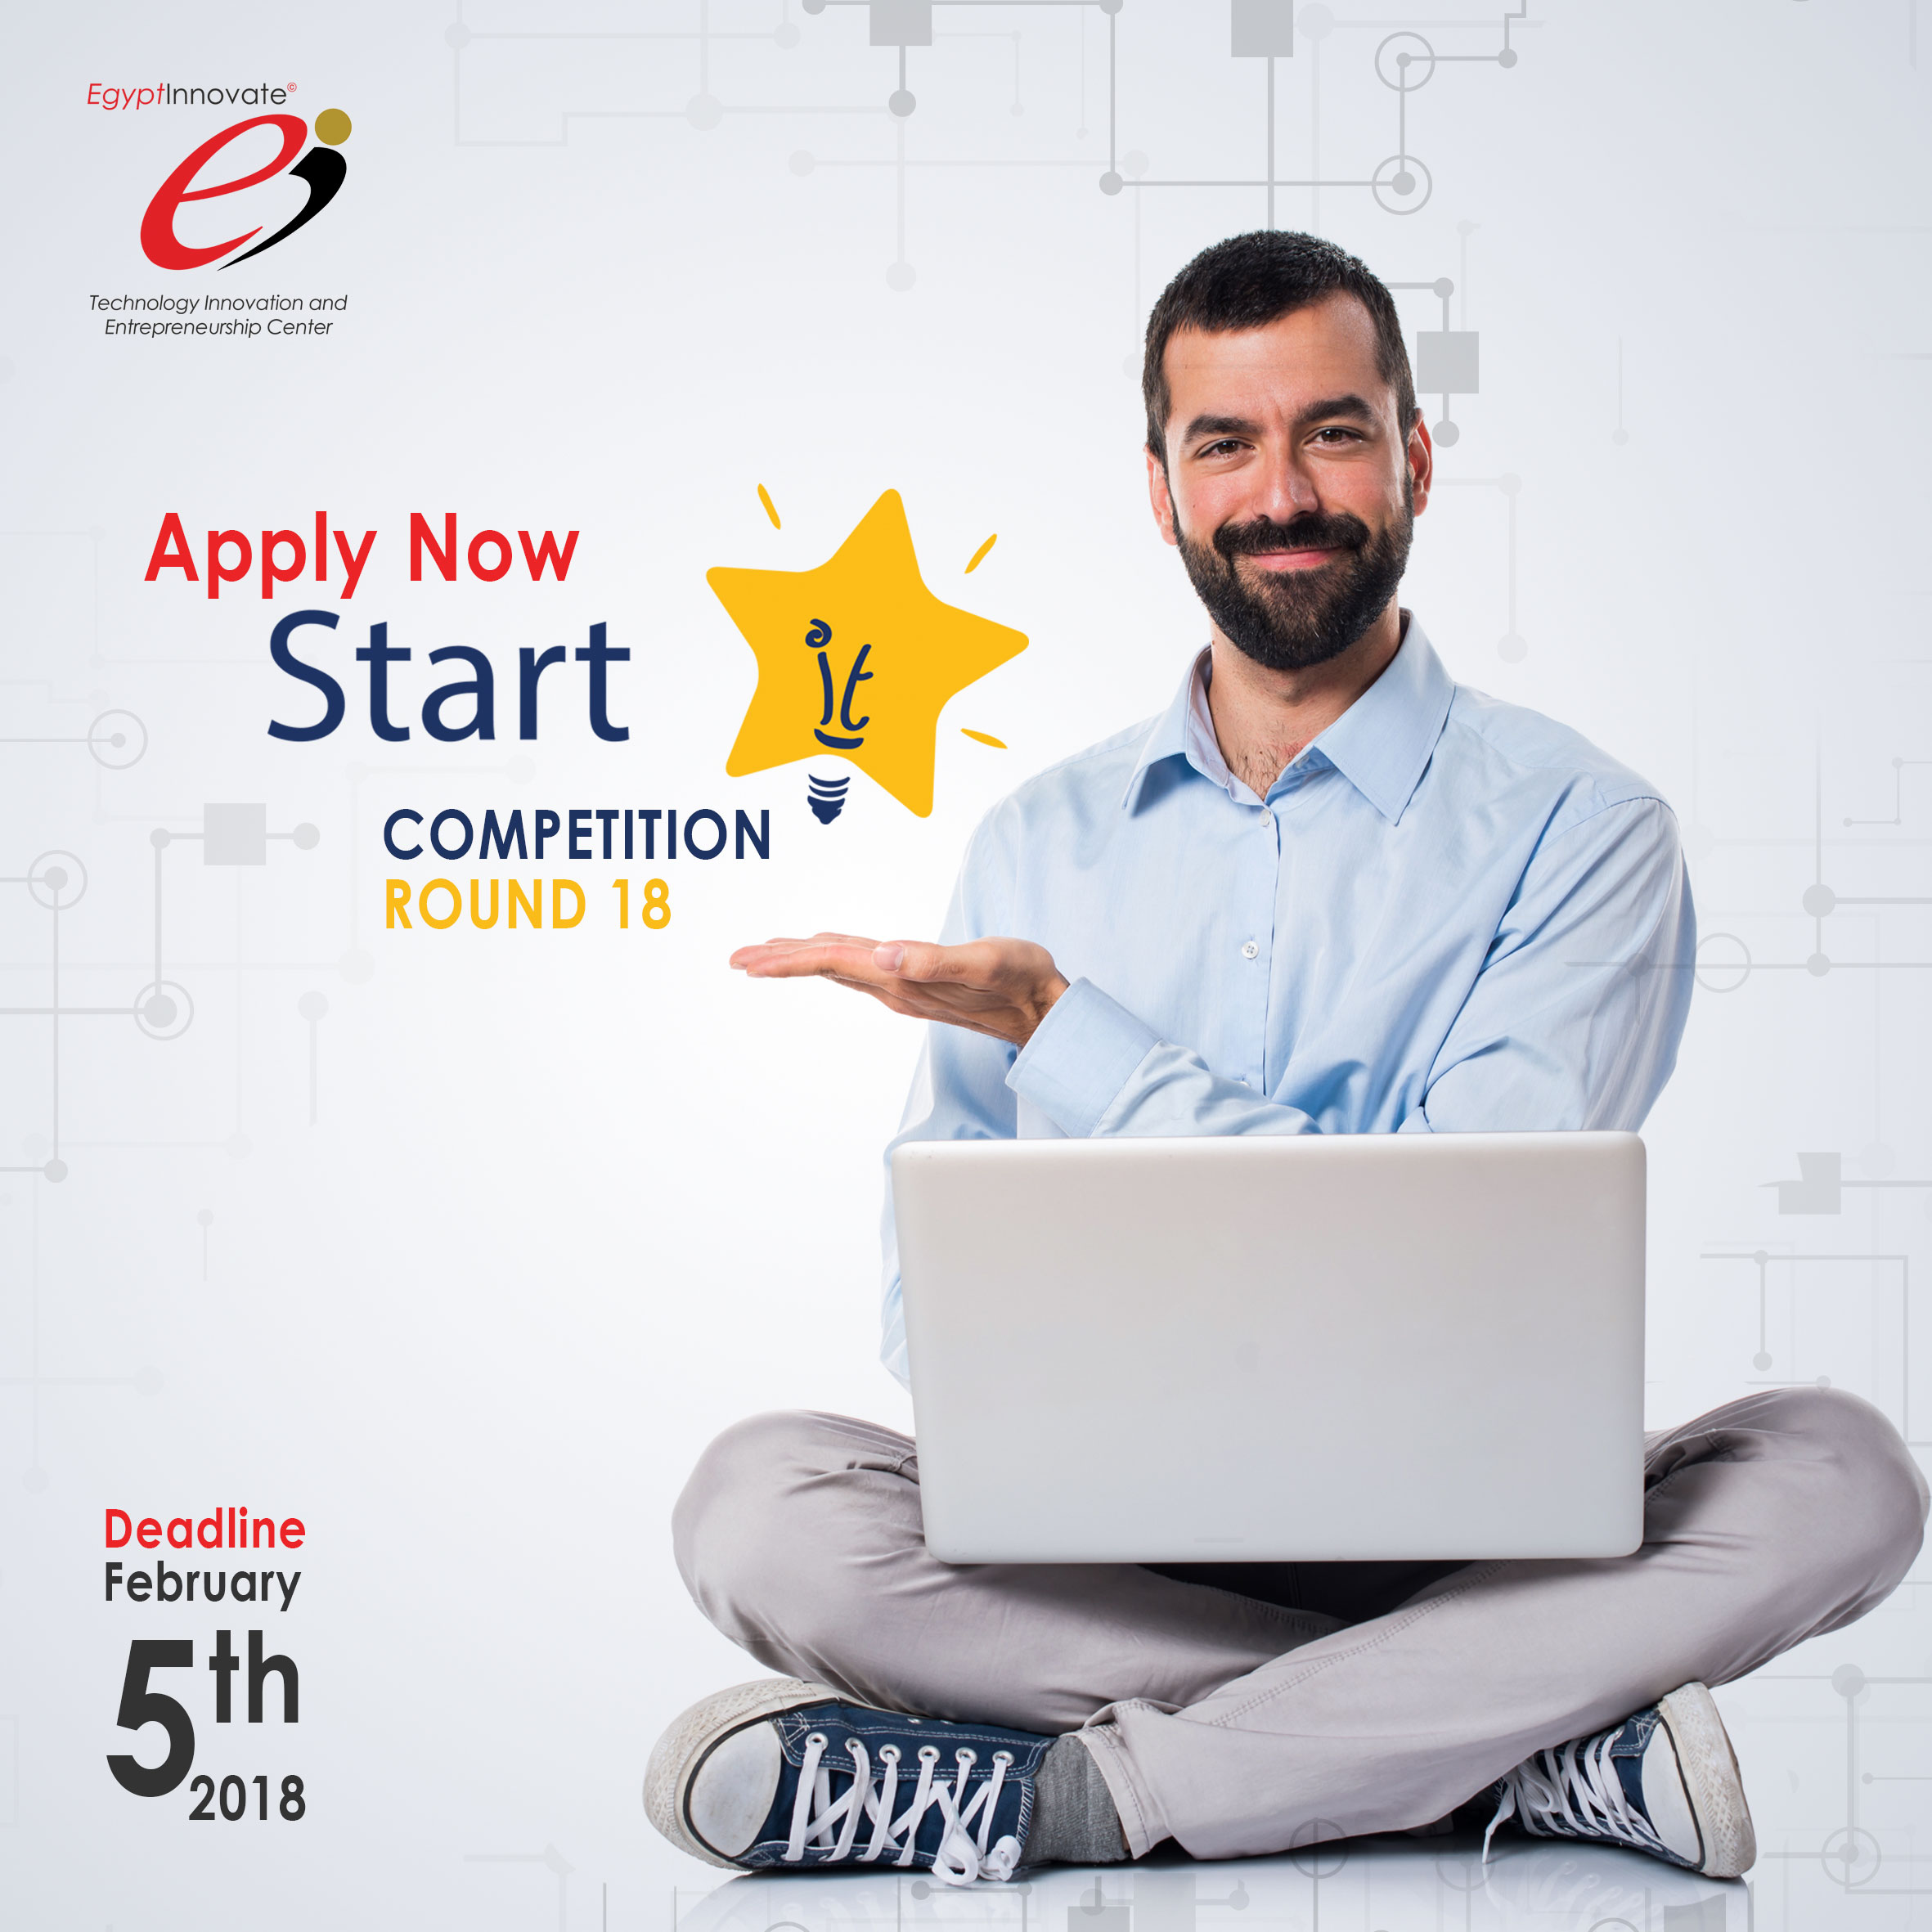 Start IT: Don't Miss Your Chance and Apply Now